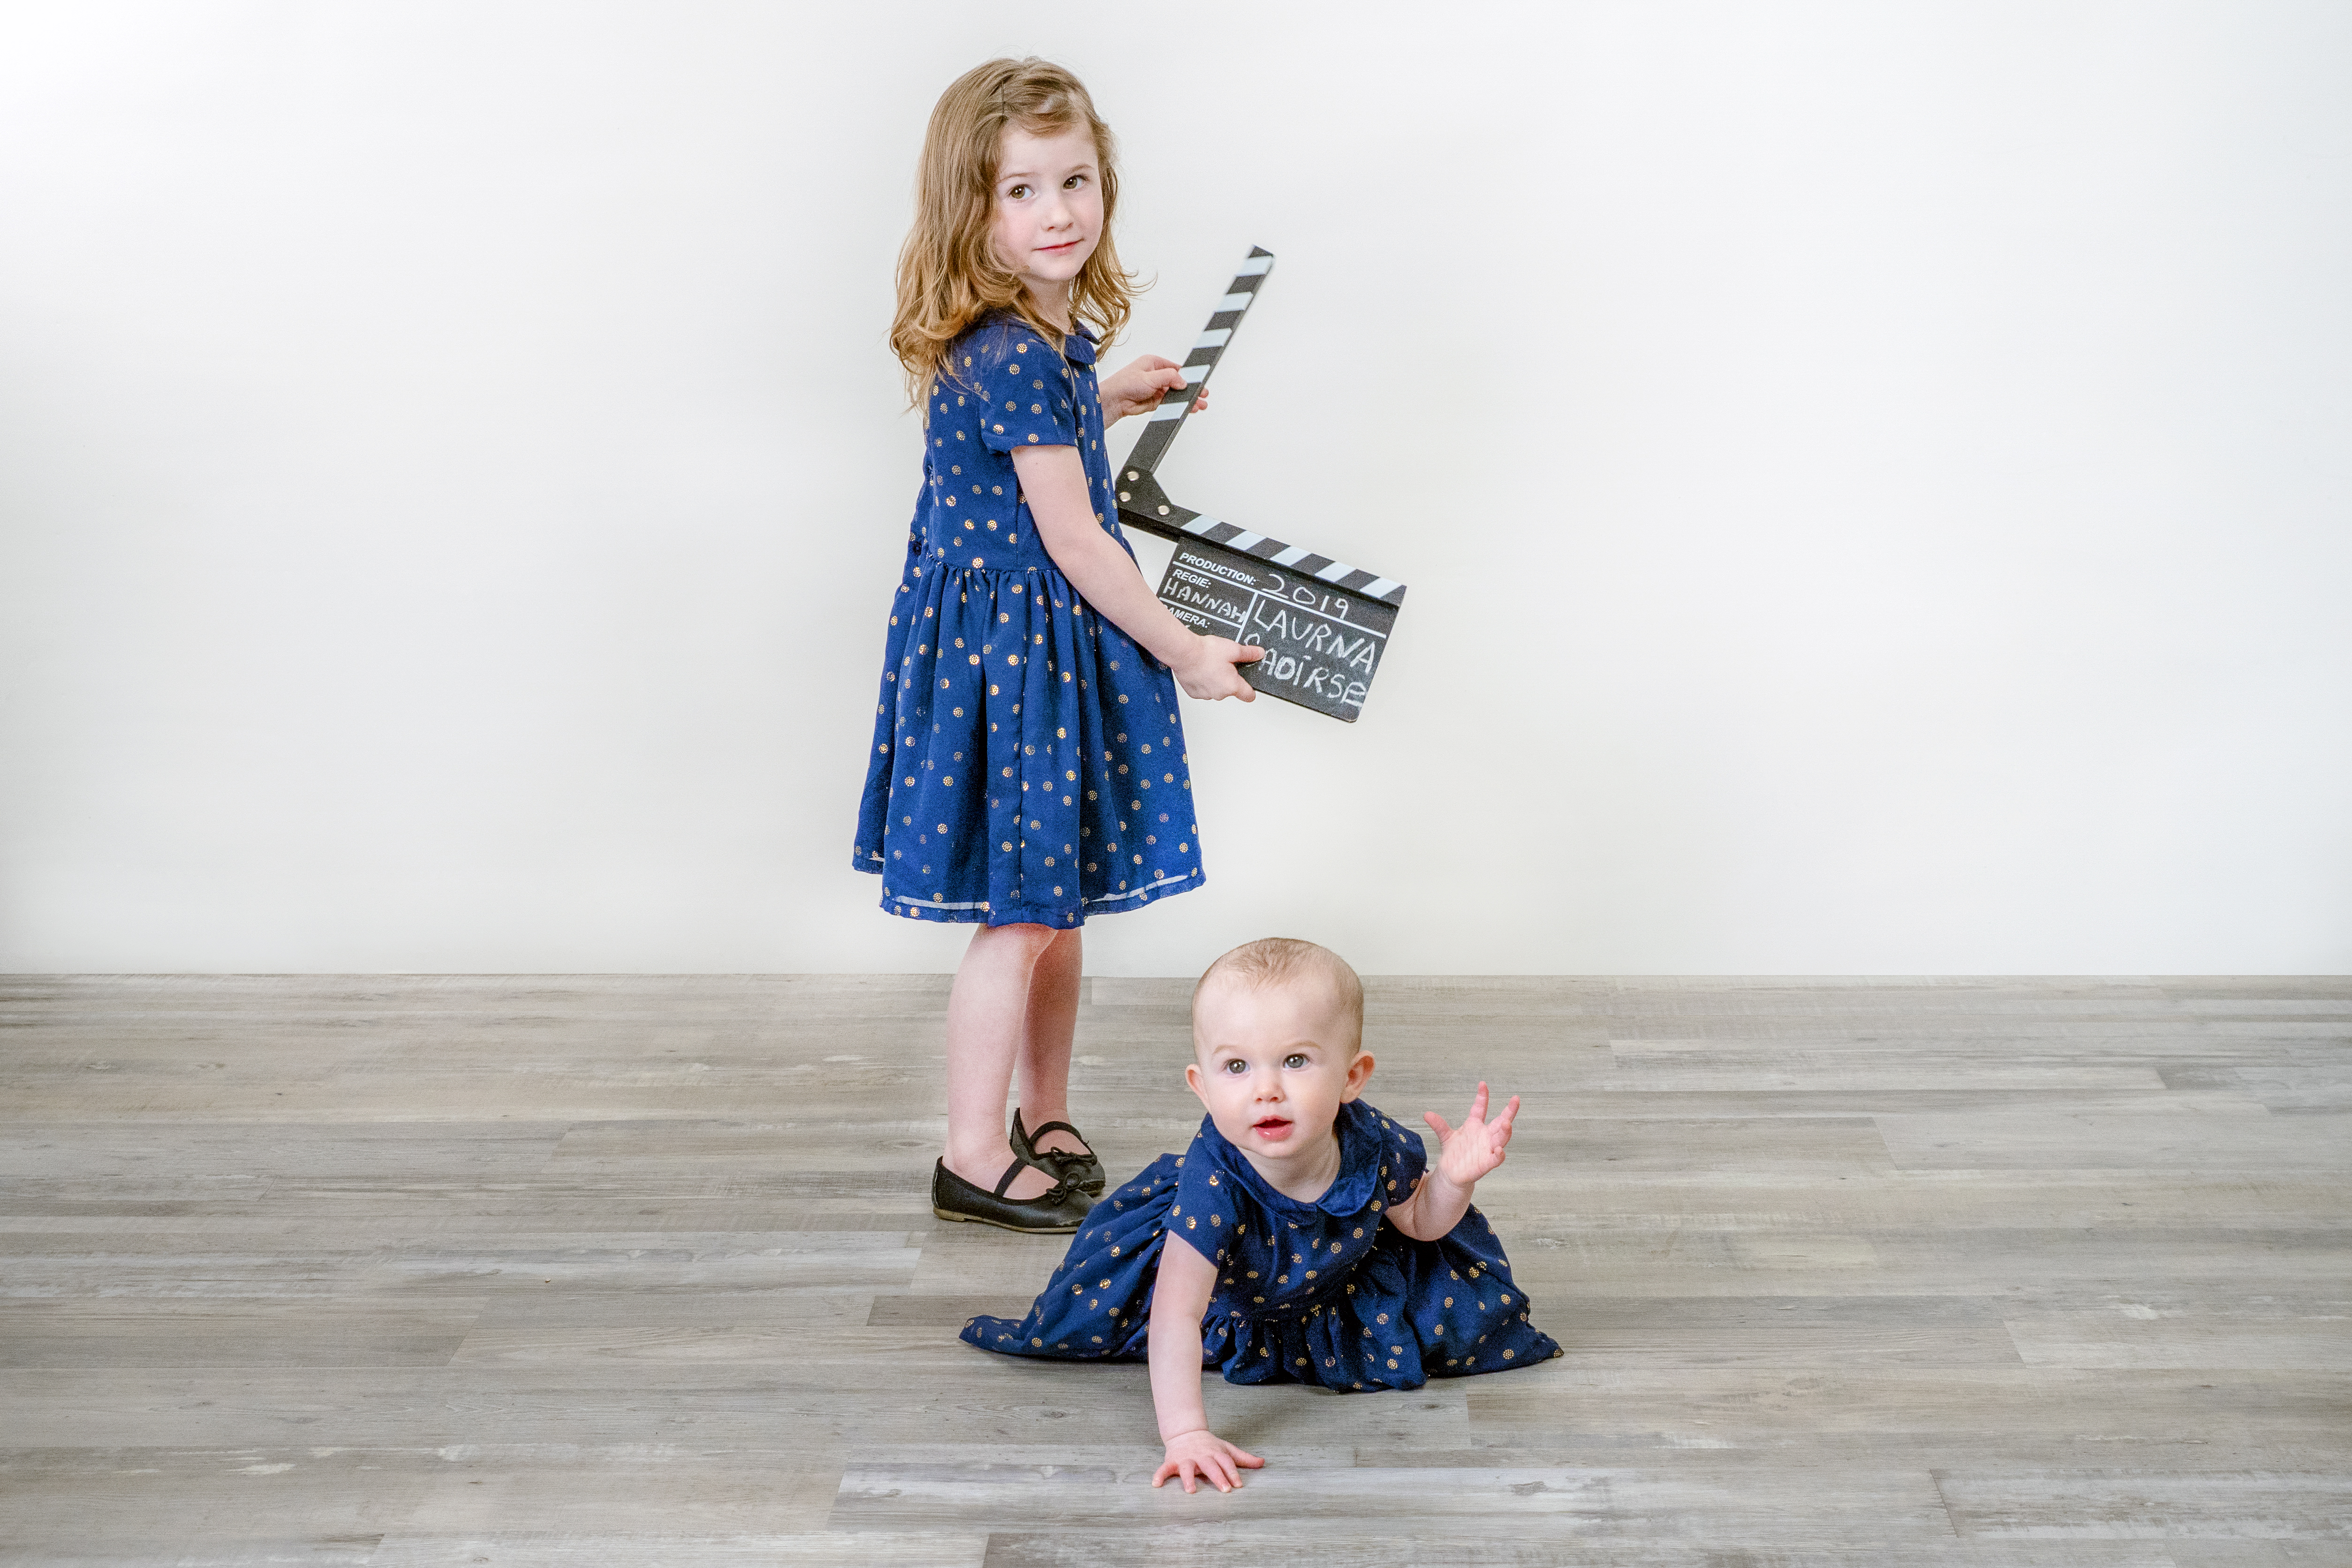 Budding Filmmakers